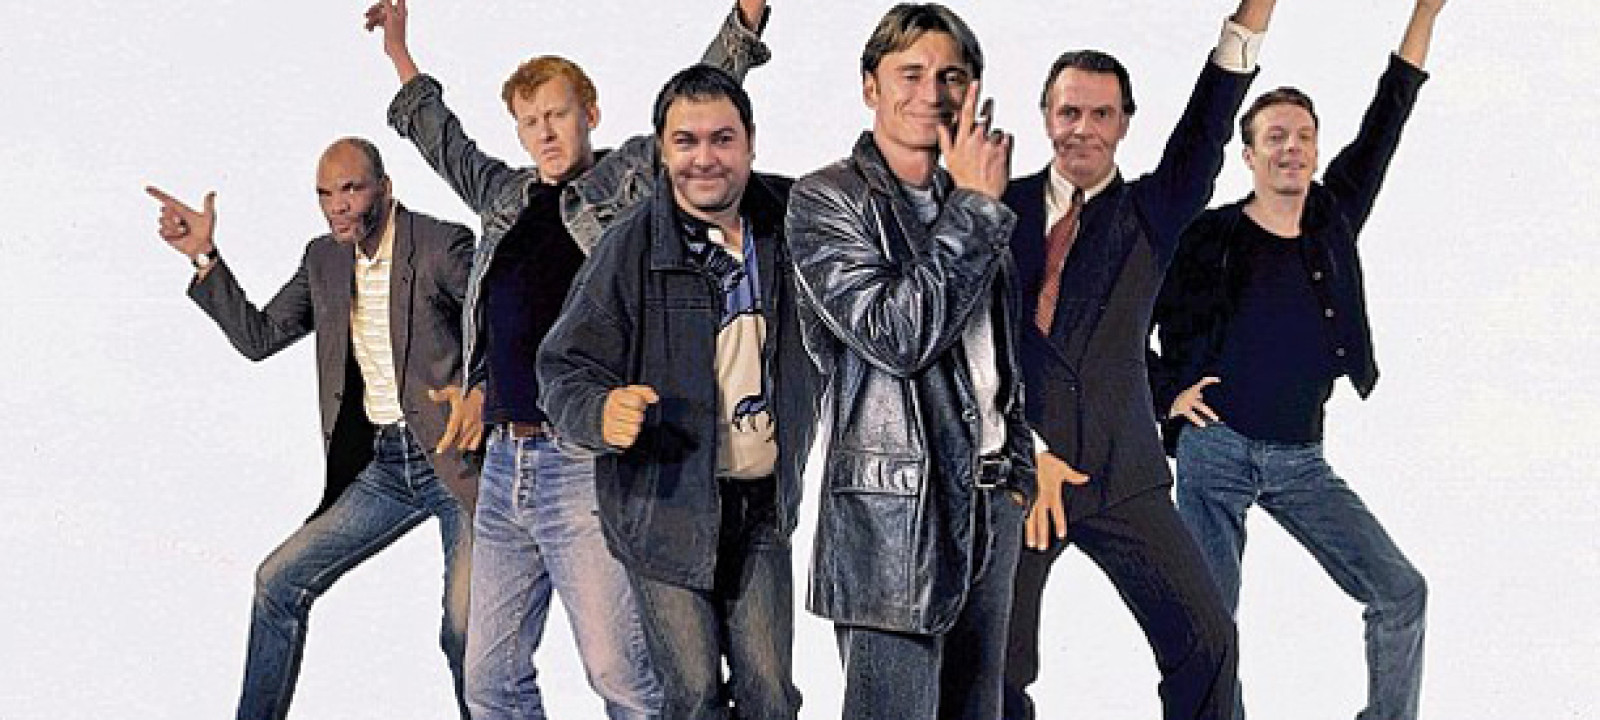 the cast of the full monty where are they now anglophenia